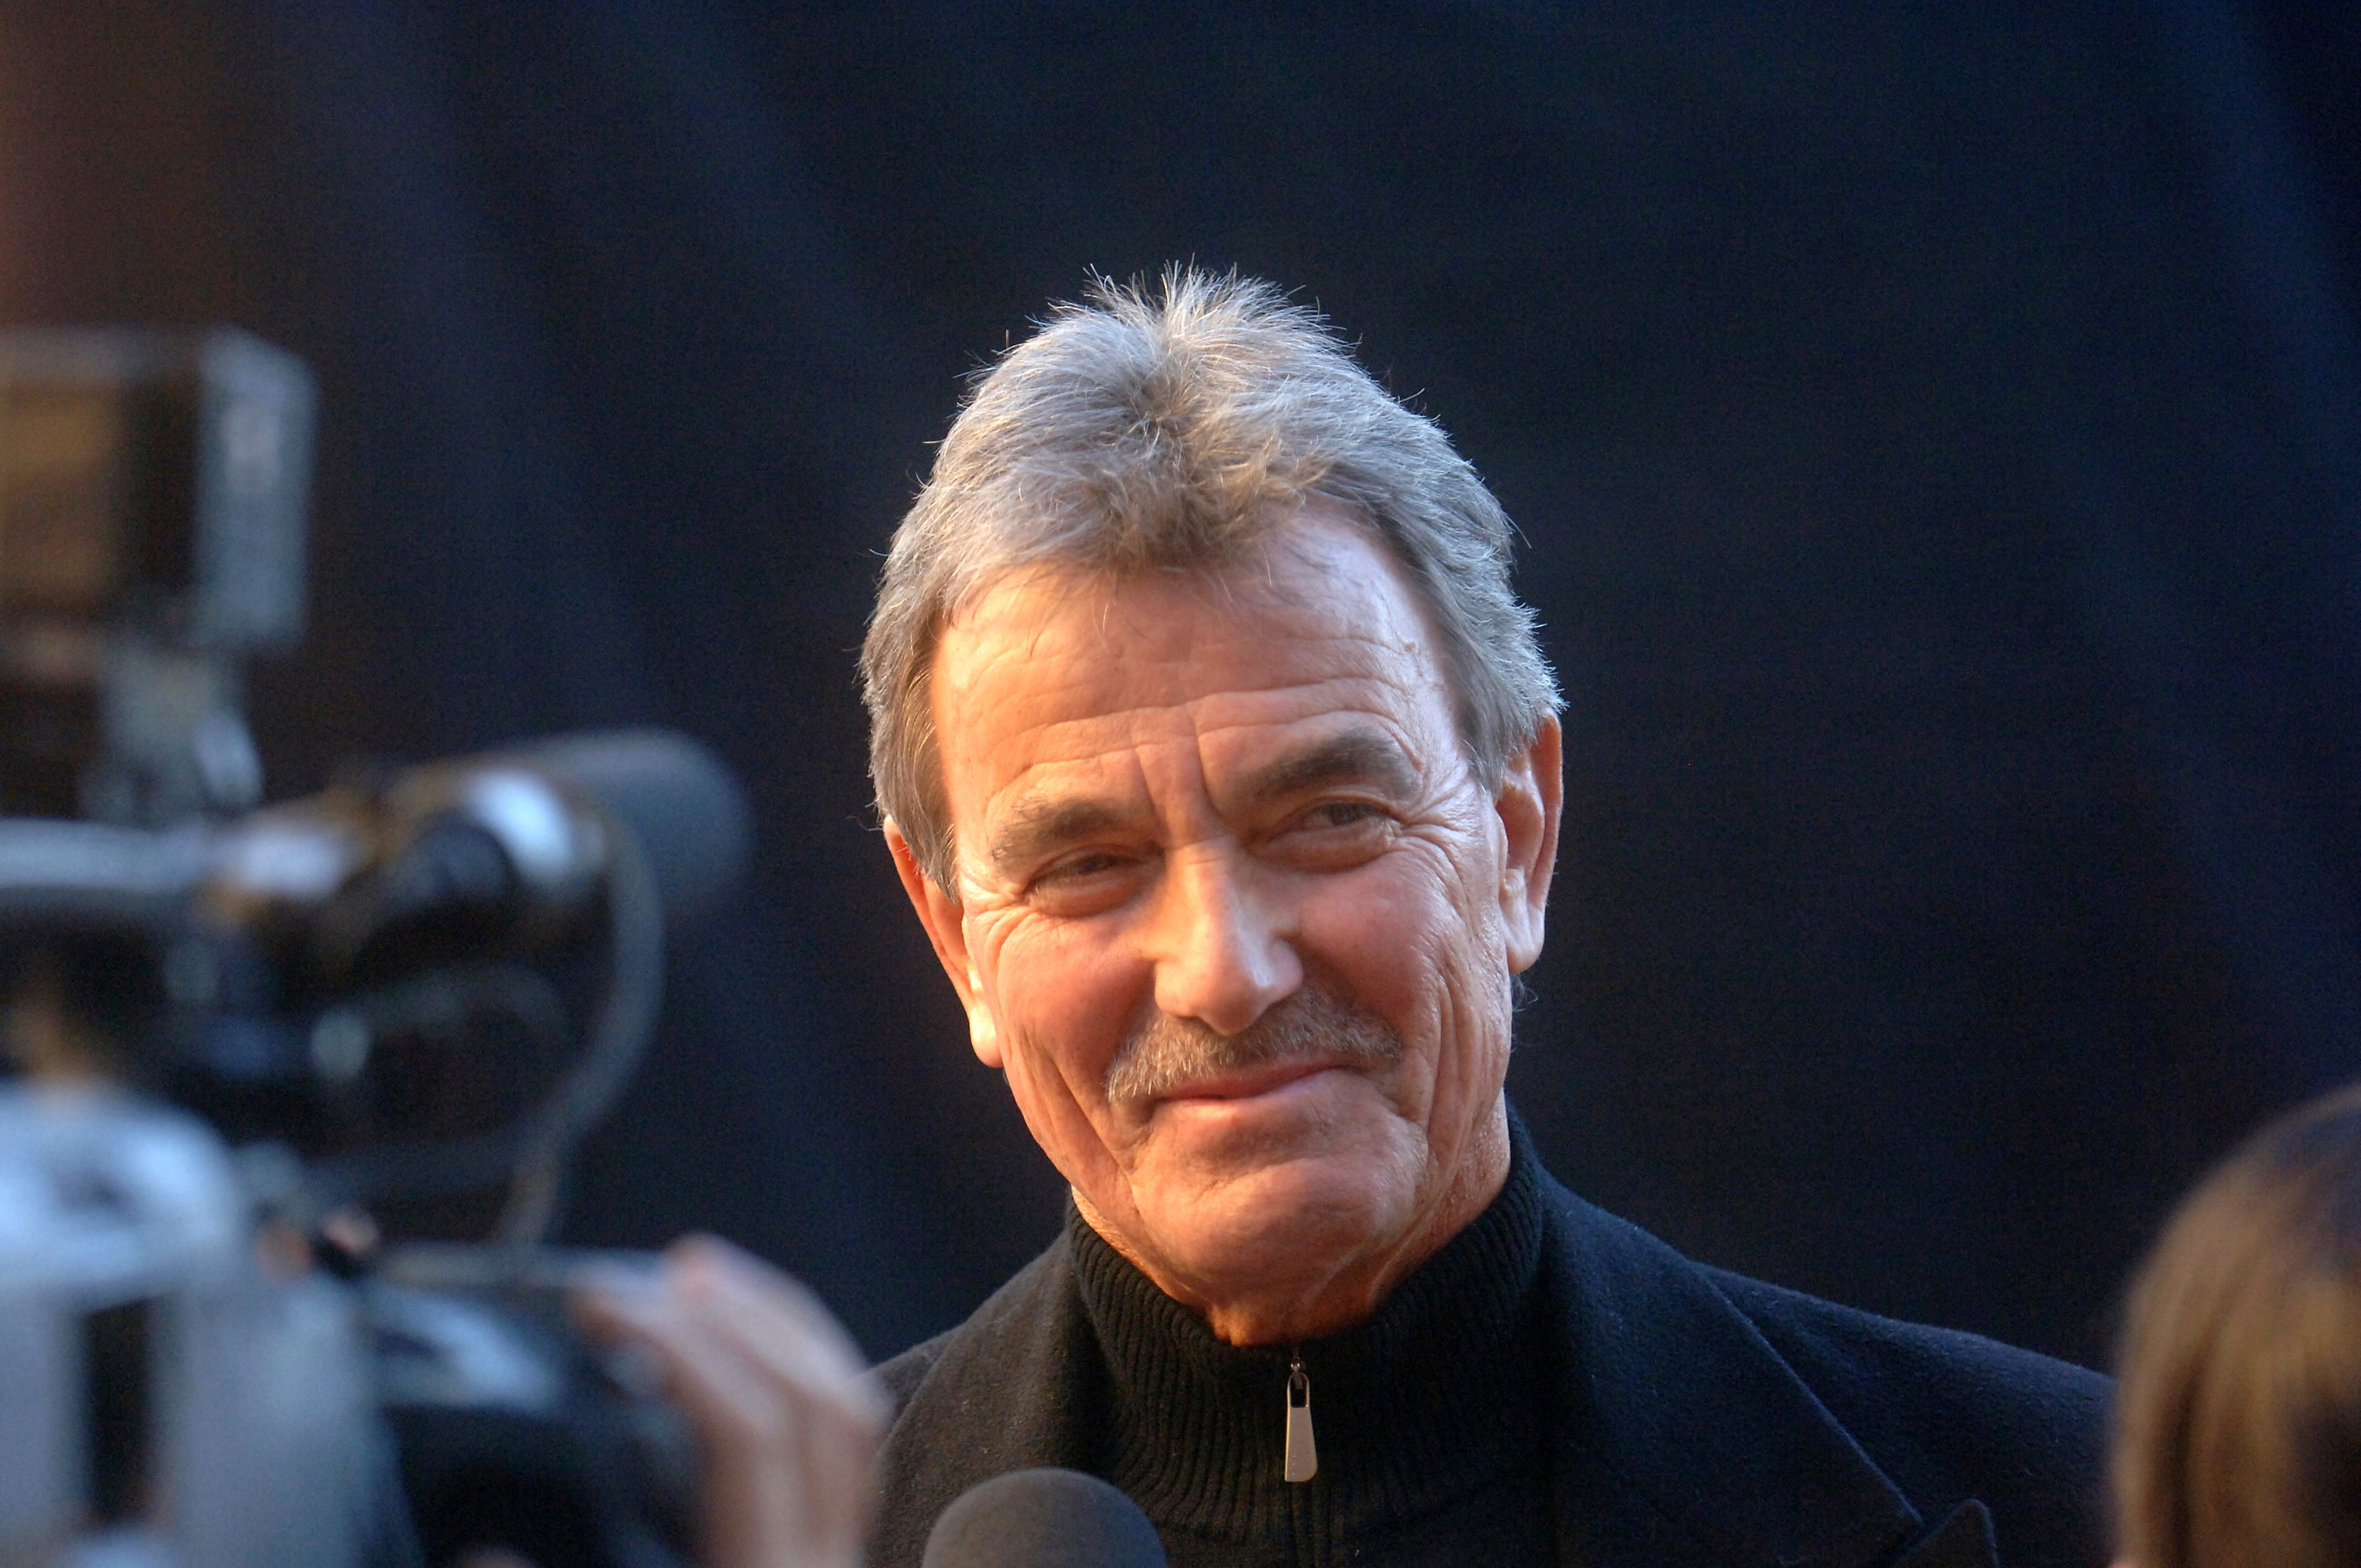 Eric Braeden HQ wallpapers